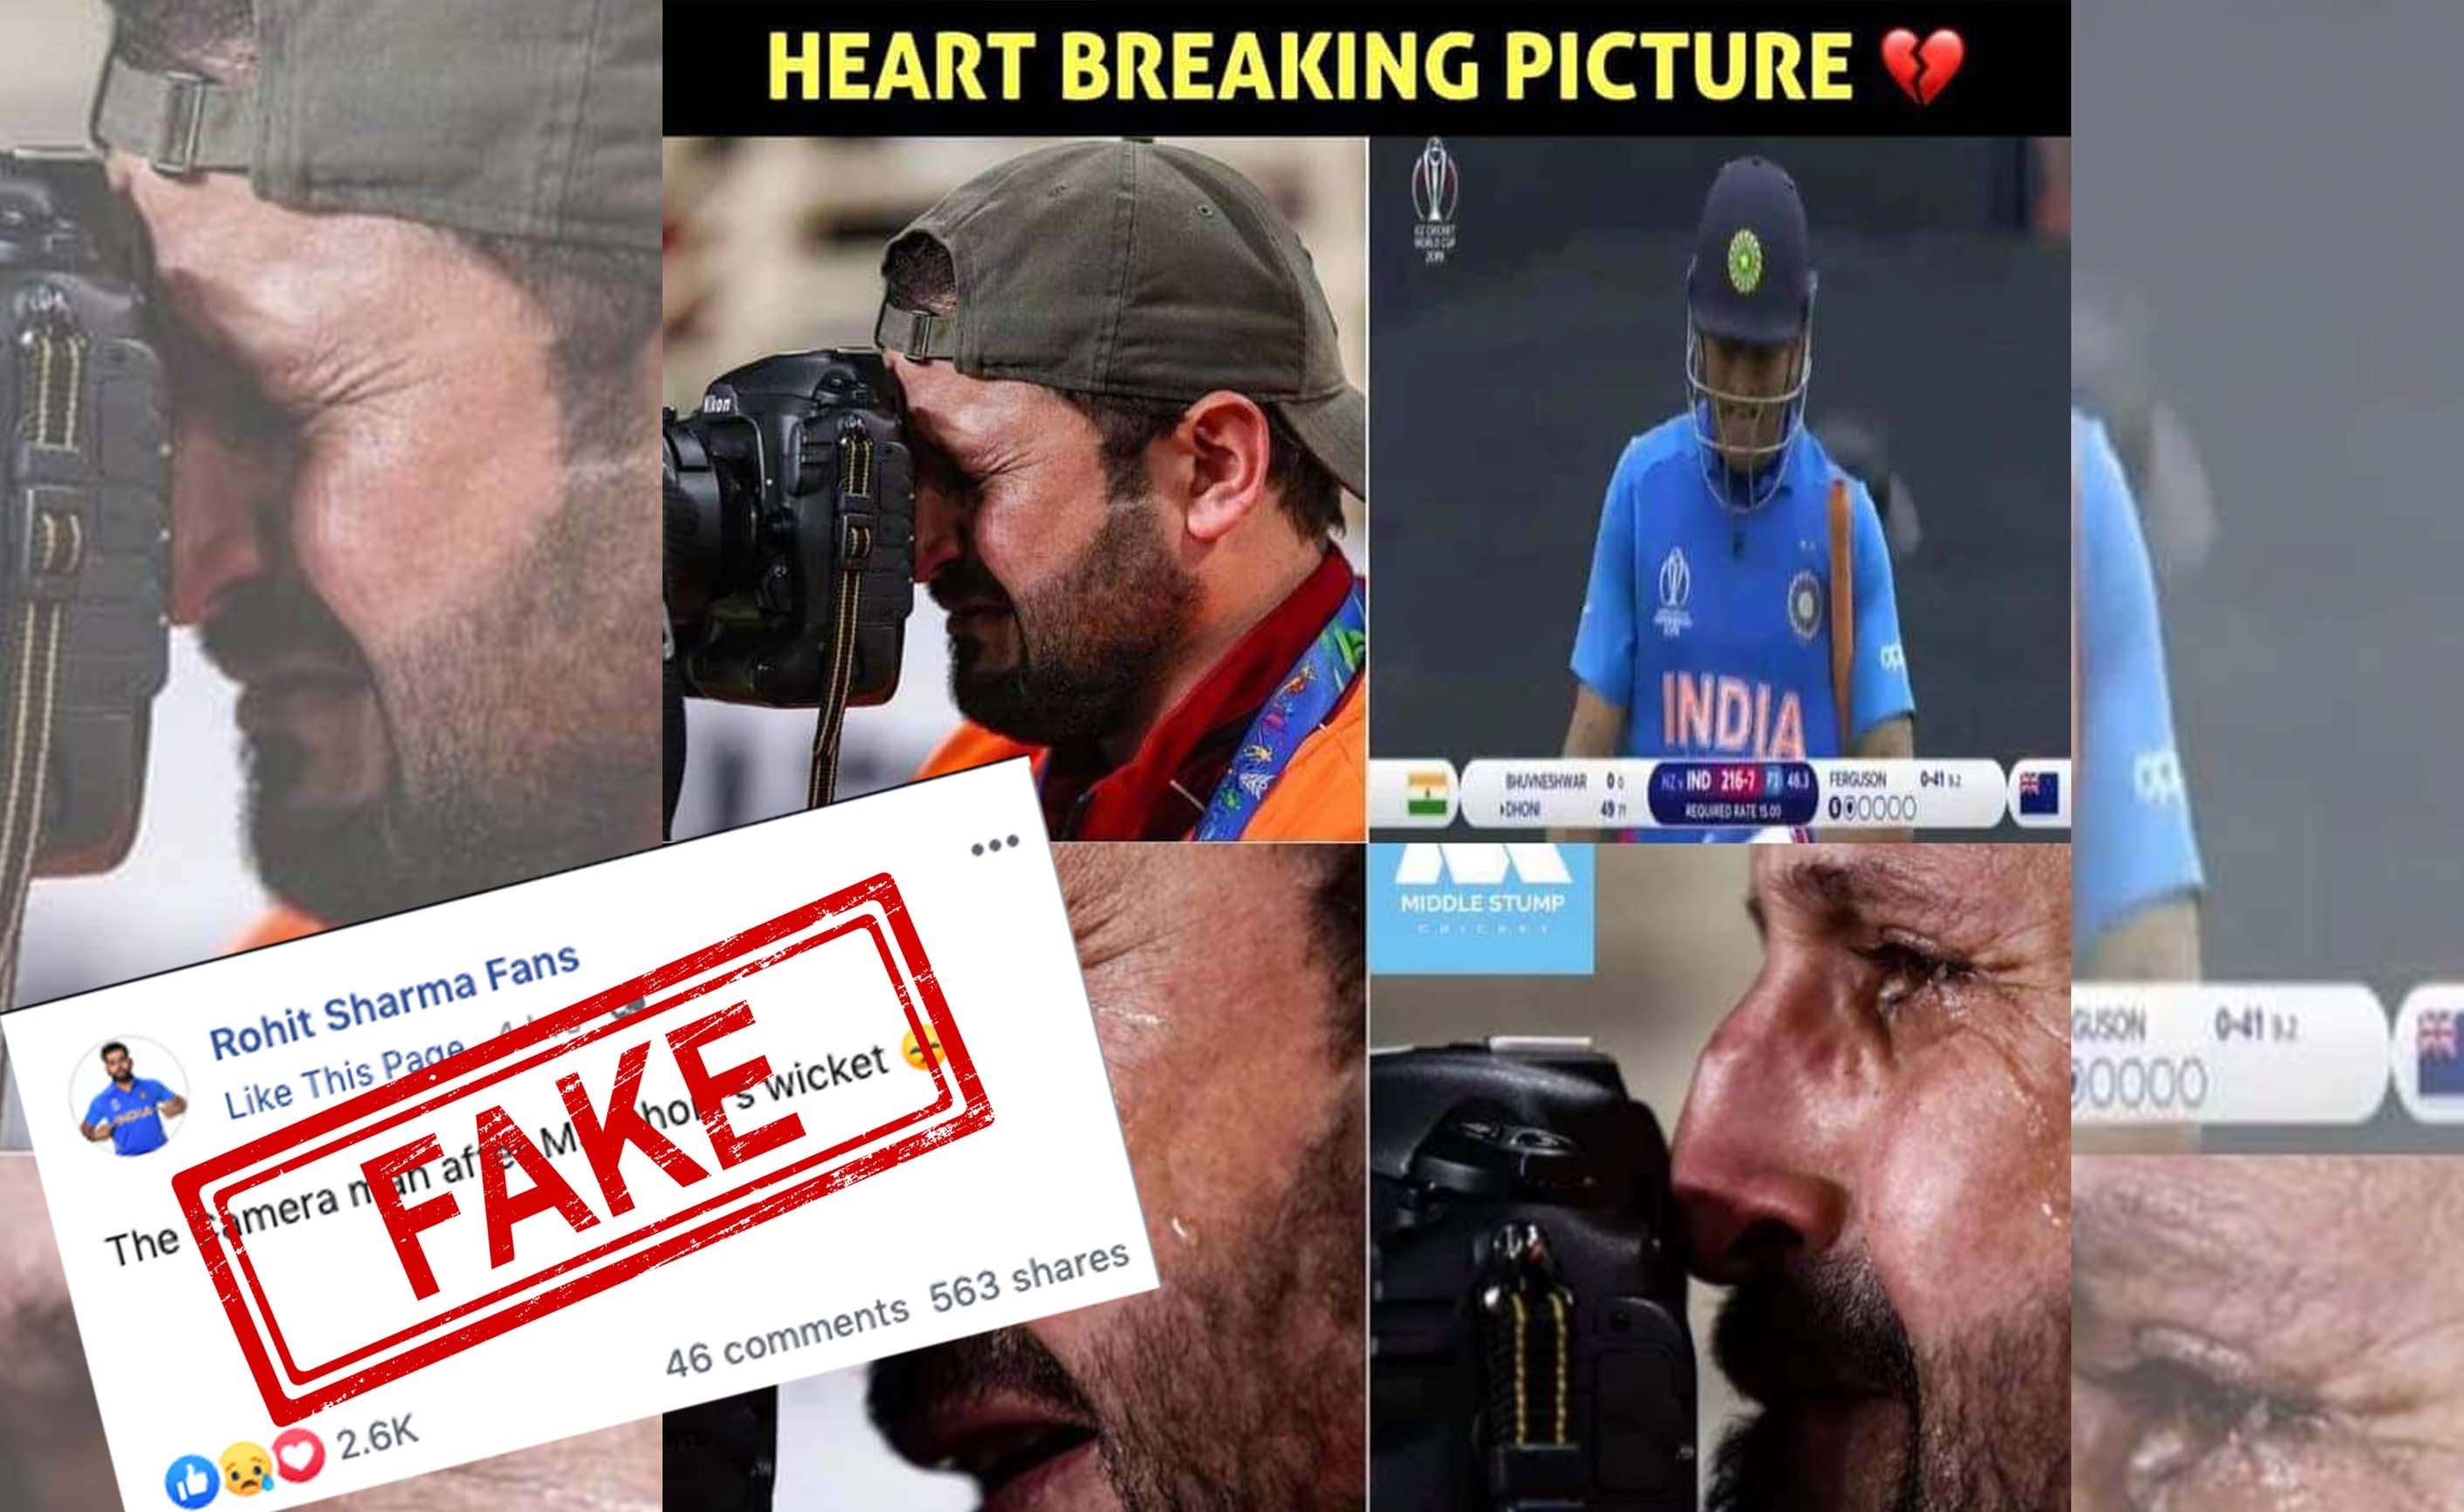 MS Dhoni, Run out, Semi Final, World Cup, 2019, NewsMobile, Mobile, News, India, Photographer, Crying, Fact Check, Fact Checker, FAKE